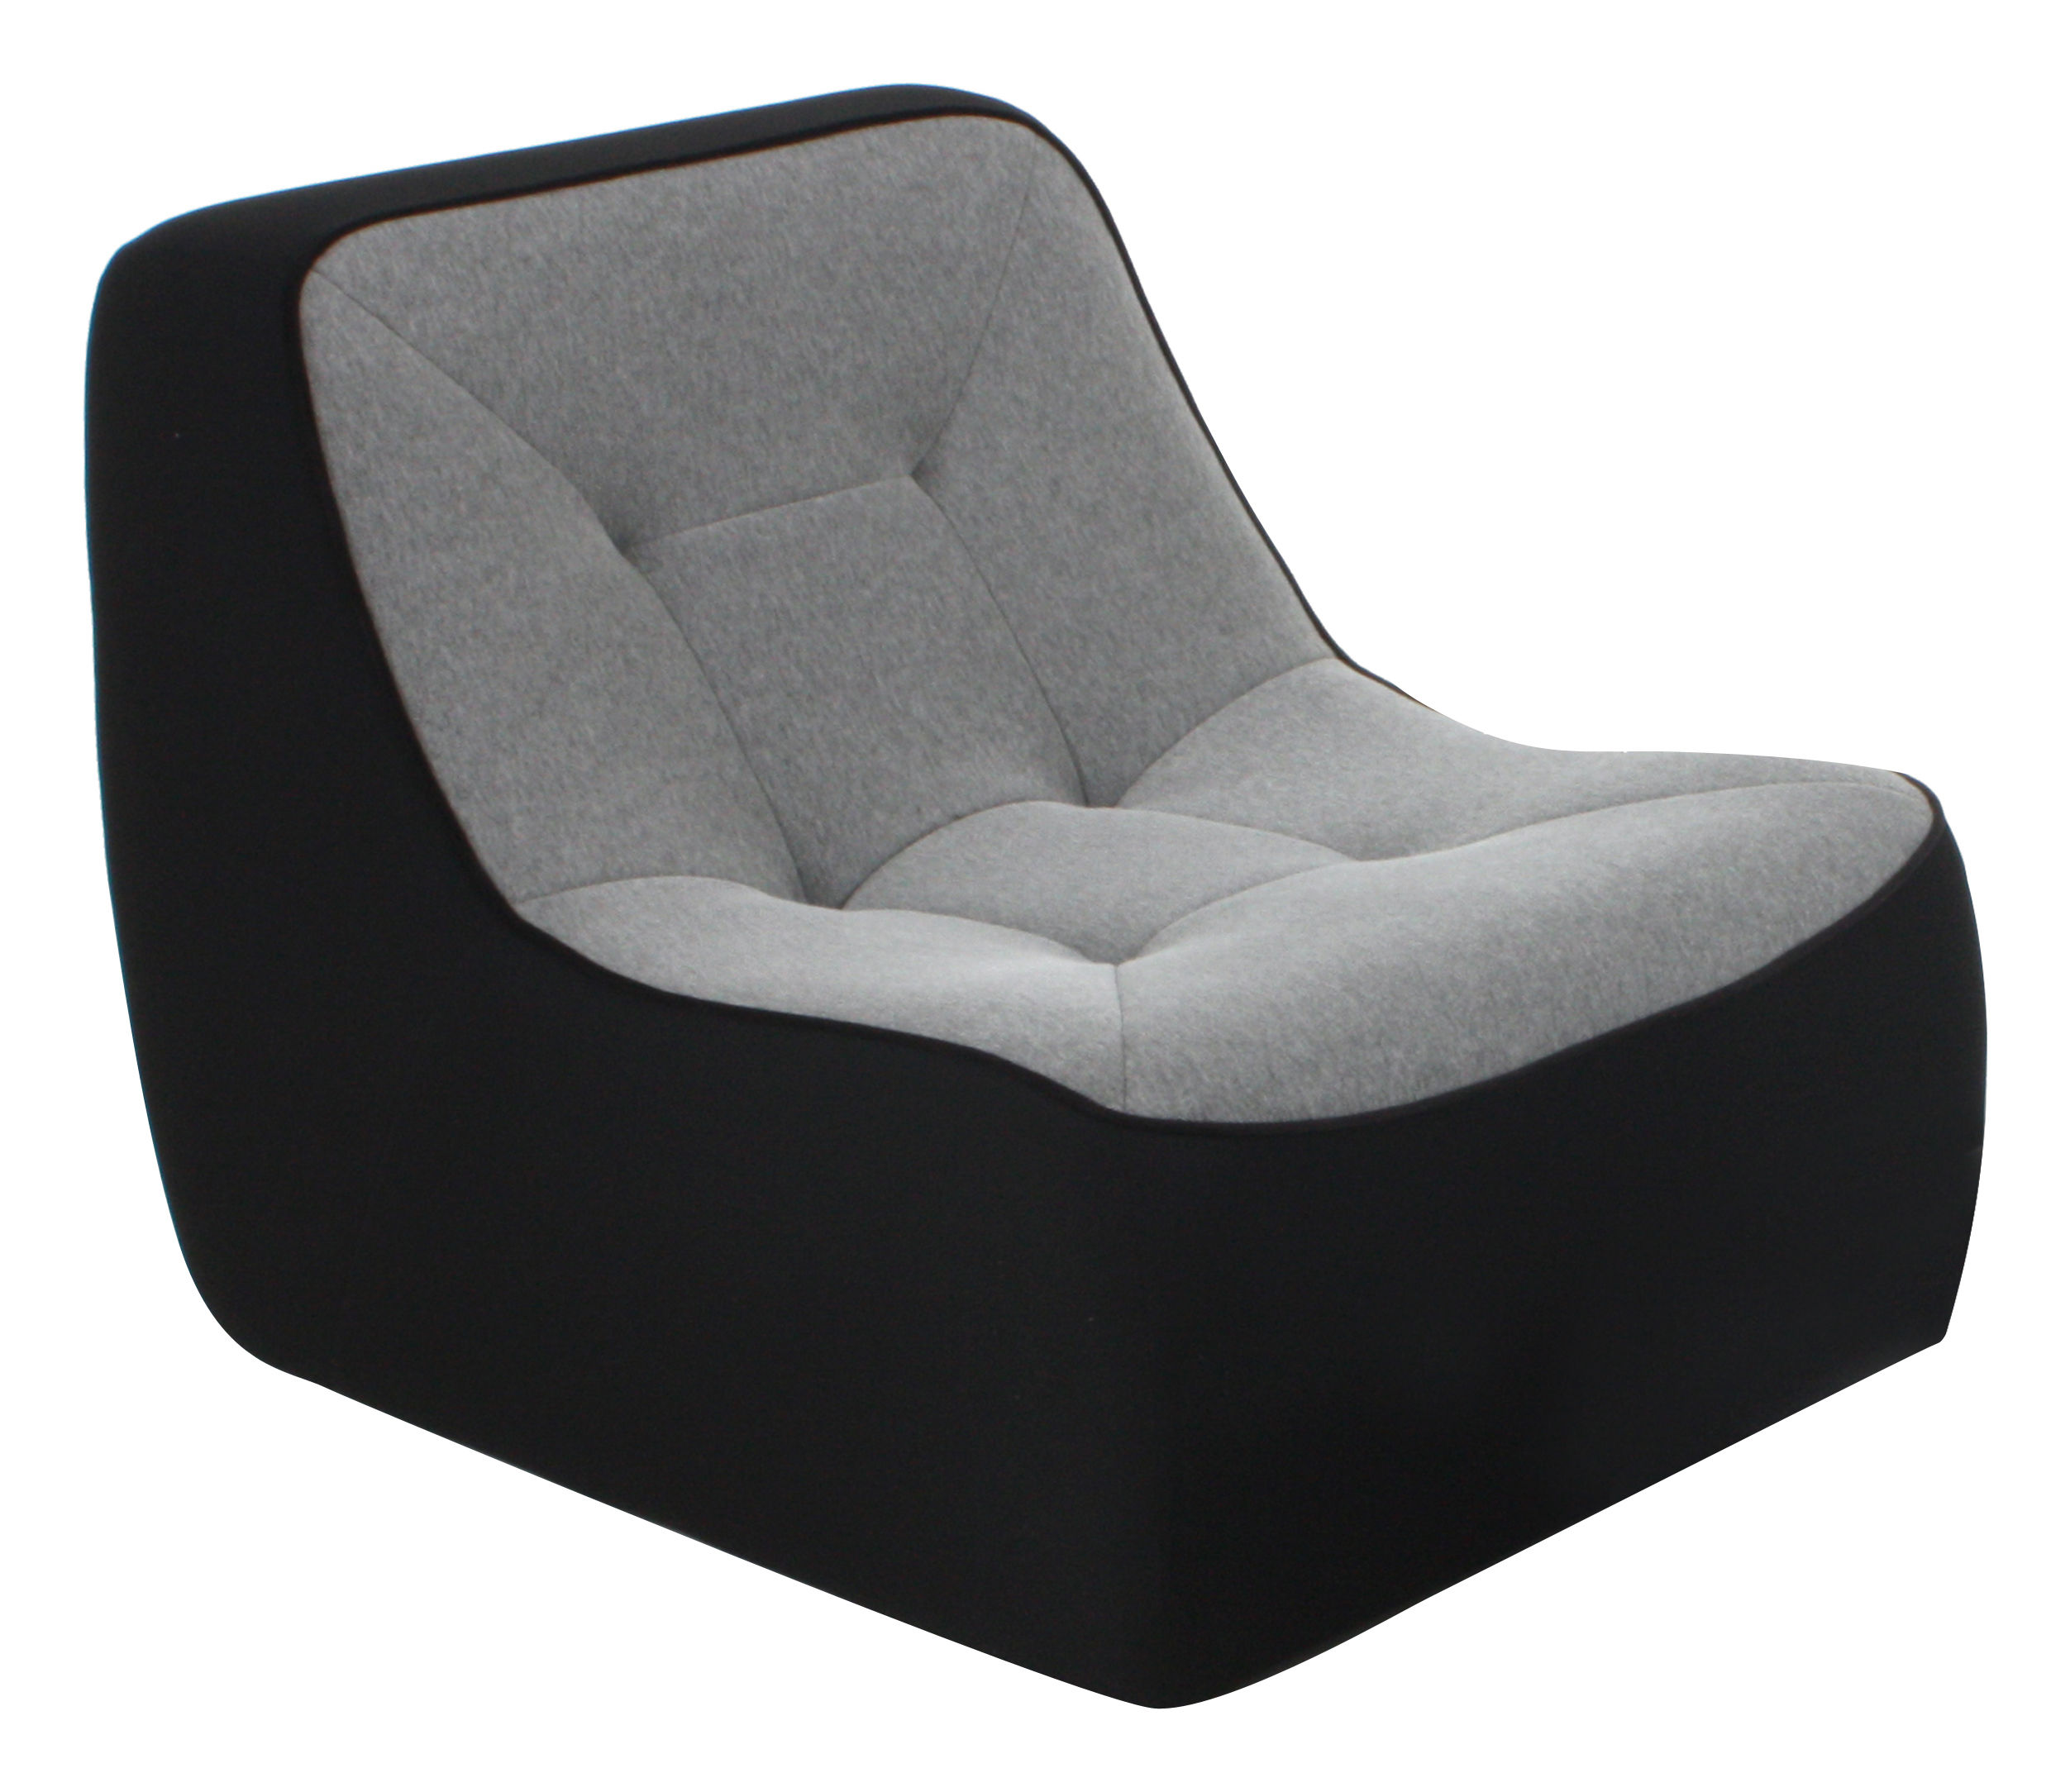 Chauffeuse Tchubby By Ora Ito Noir Gris Chiné Passepoil Noir - Fauteuil chauffeuse